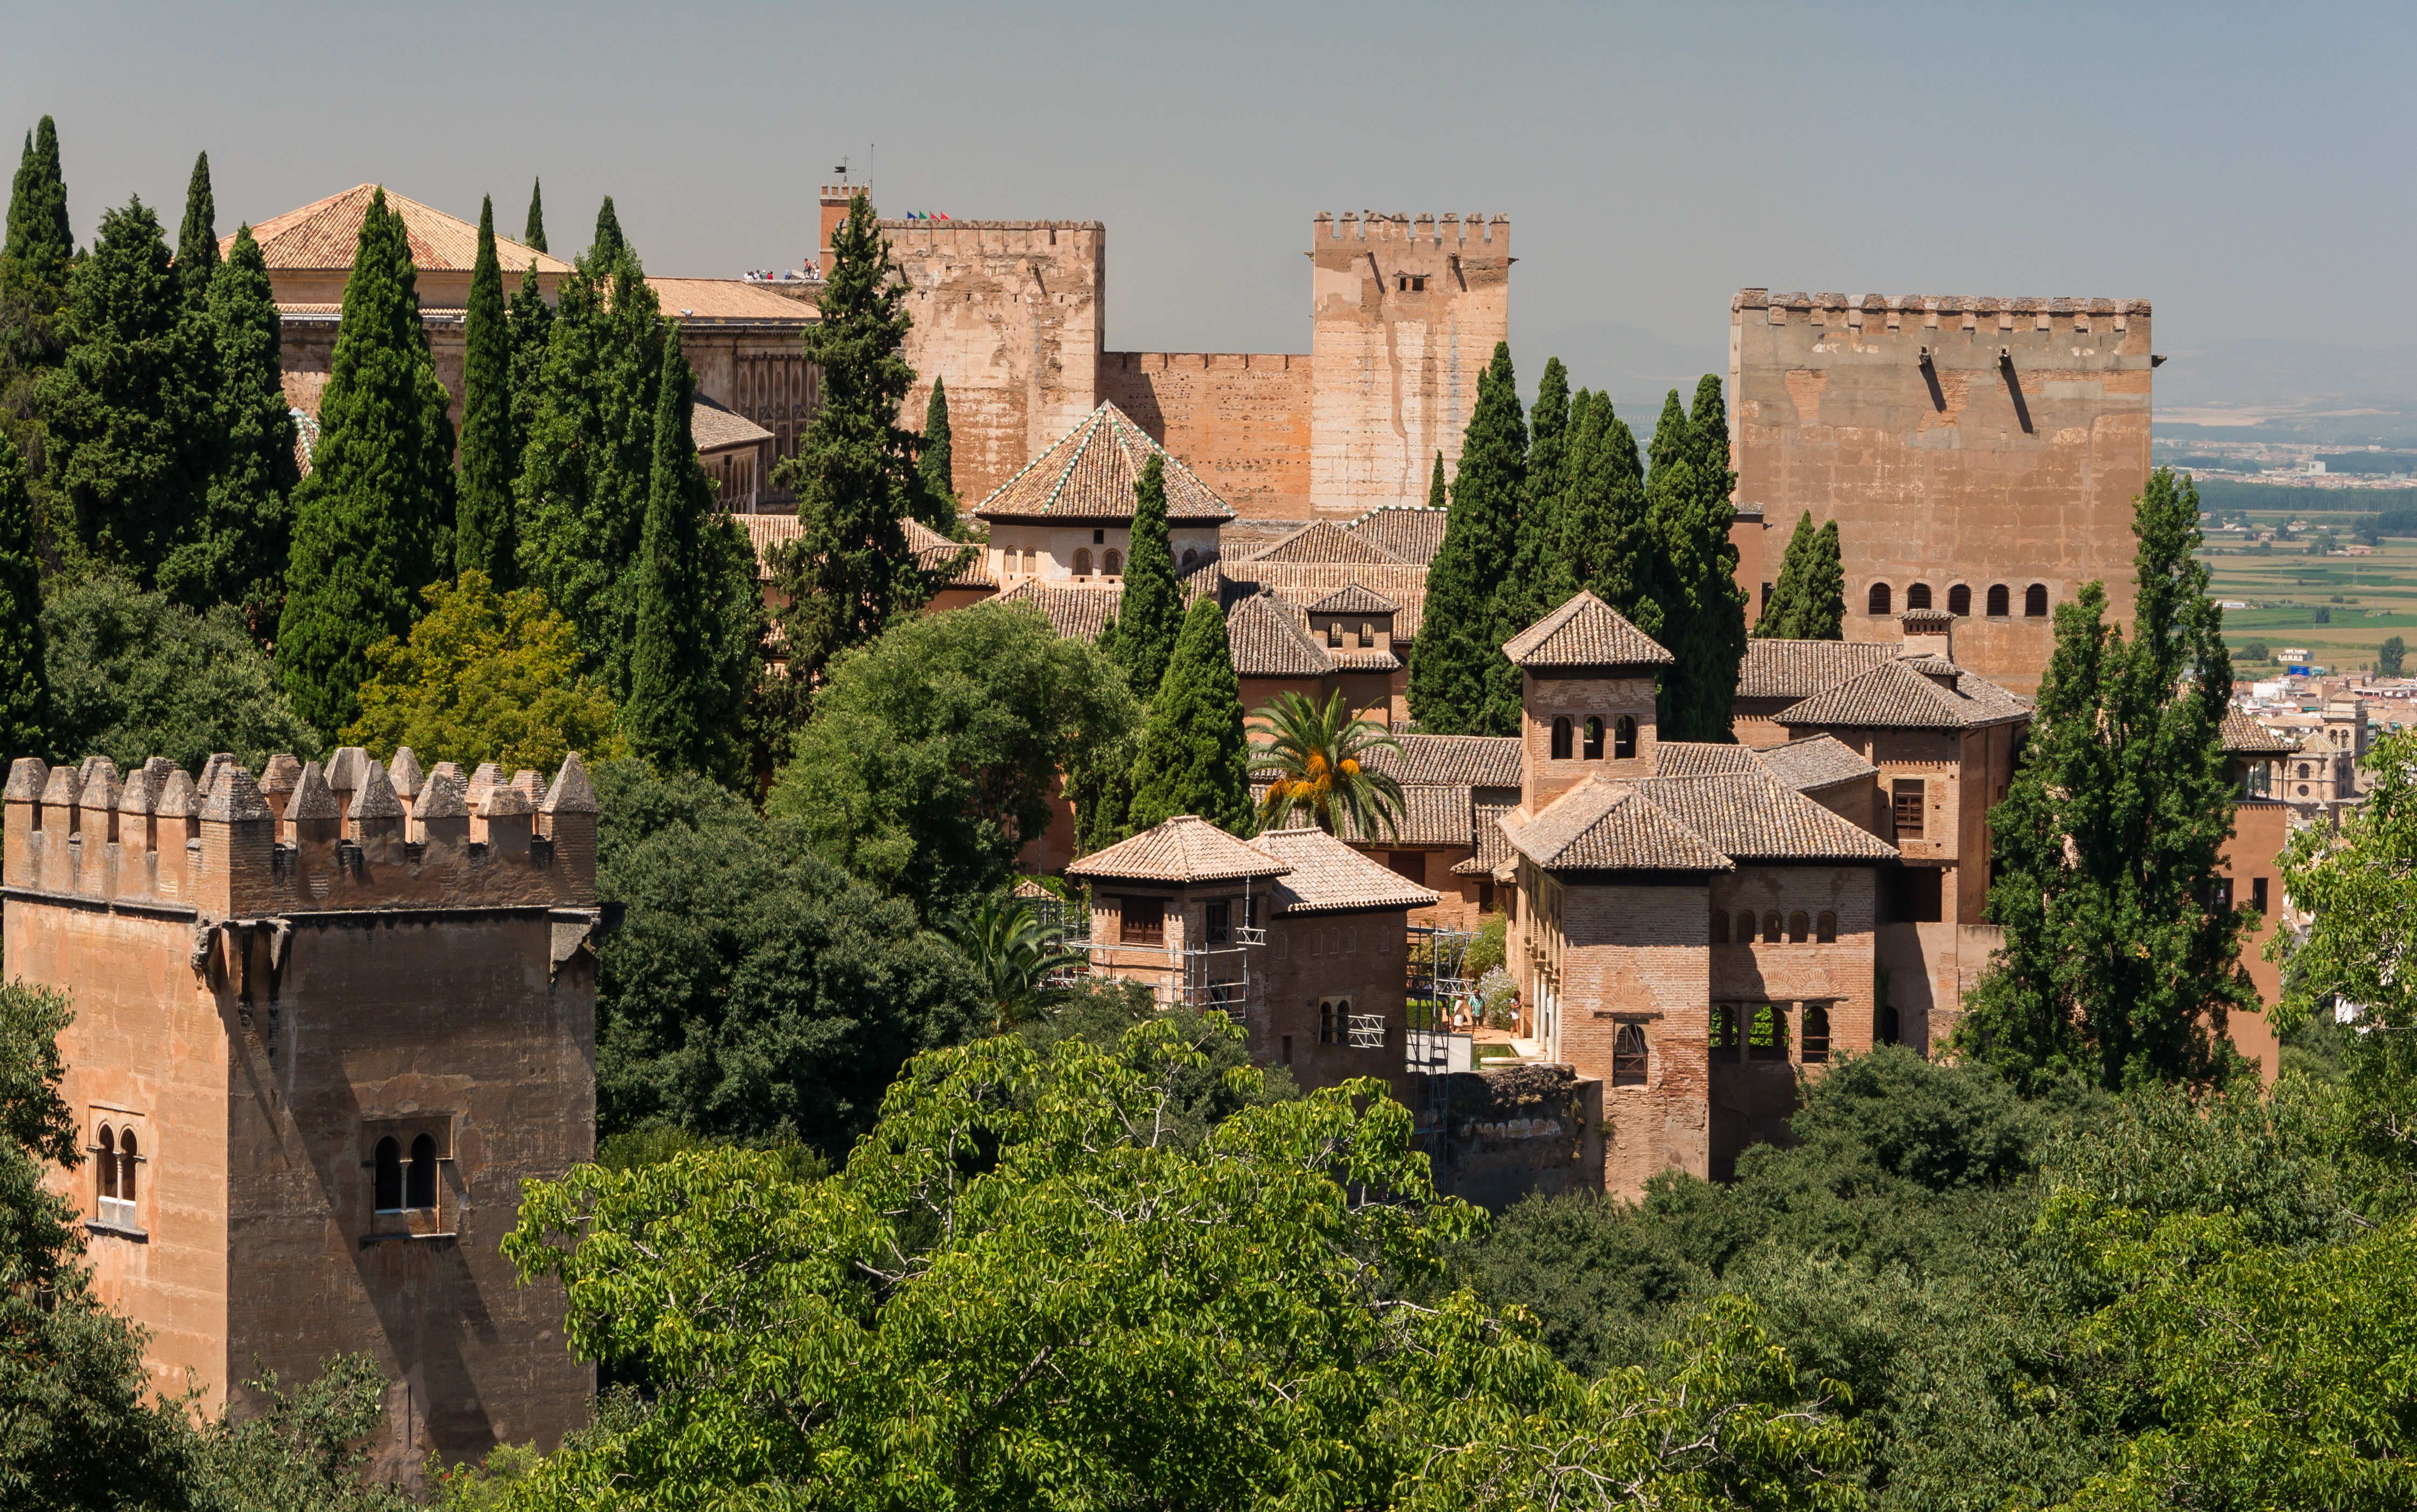 File:Various roofs and towers of Alhambra, from Generalife gardens ...